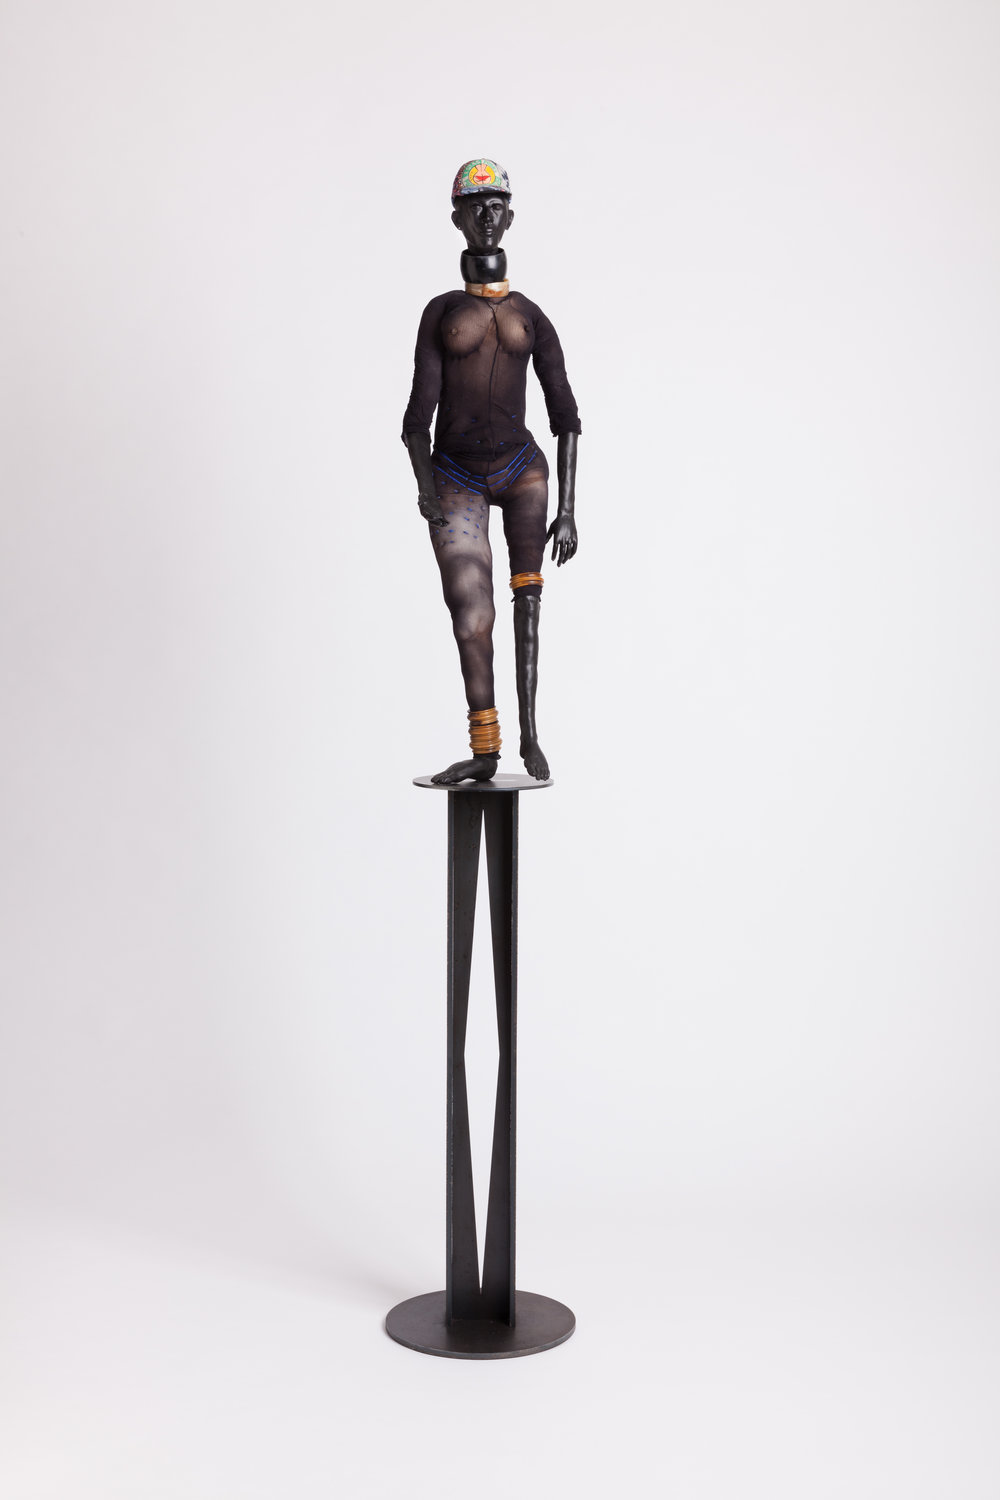 Step Off  2014, Modelling material, fabric, wood, paint and steel  39 3/4 x 11 3/4 x 13 3/8 inches